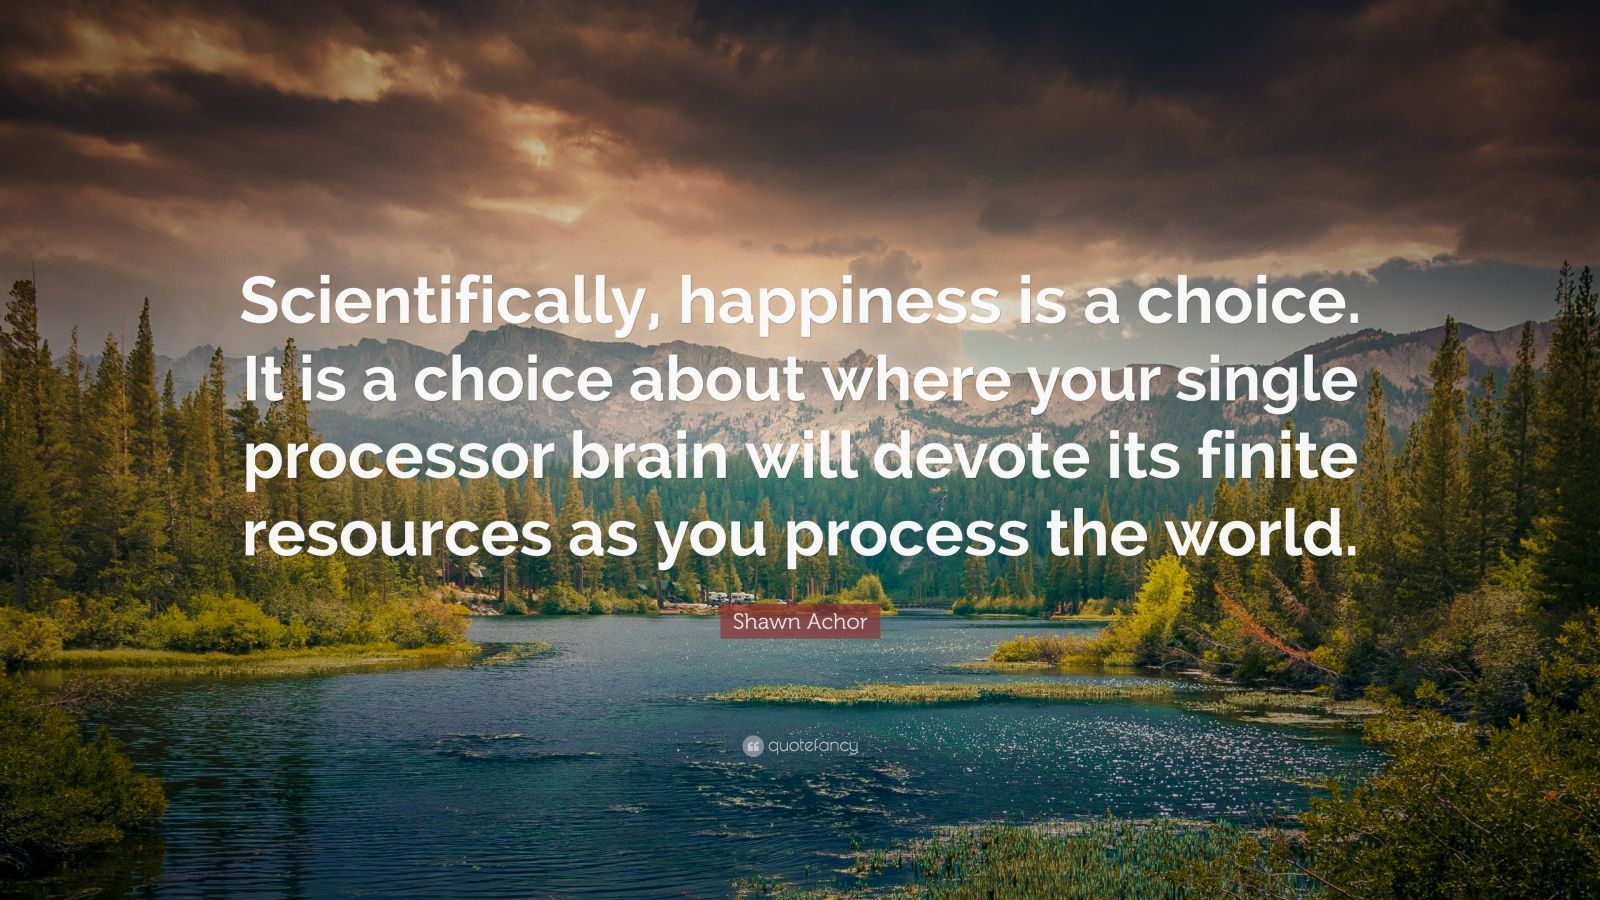 """Shawn Achor Quote: """"Scientifically, happiness is a choice. It is a choice about where your single processor brain will devote its finite resources as you process the world."""""""